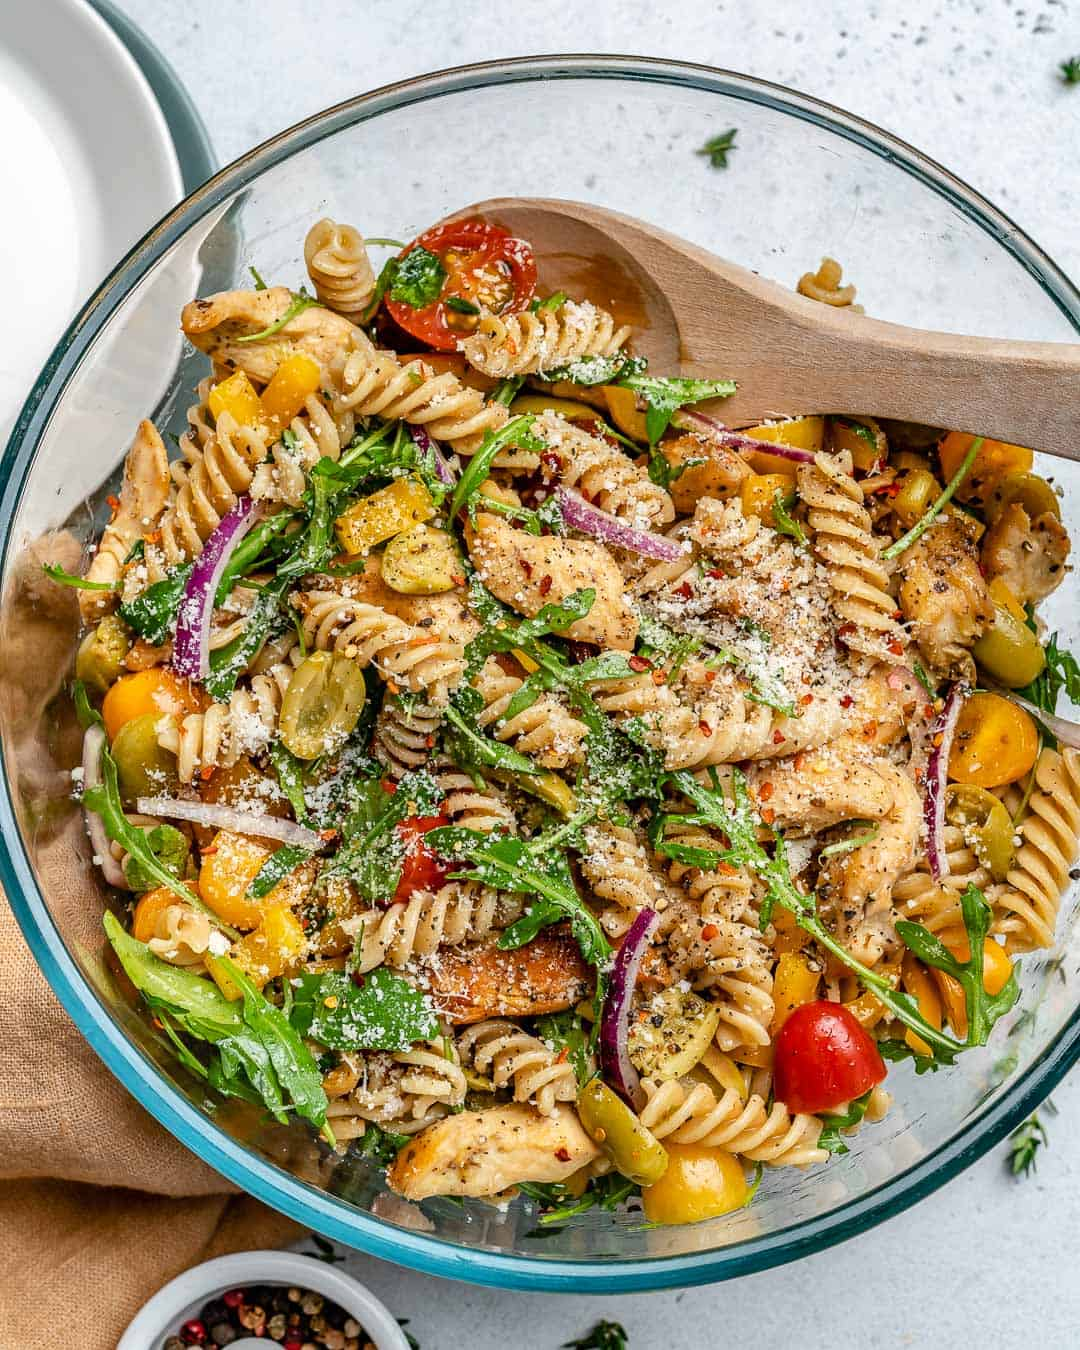 How To Make Chicken Pasta Salad Healthy Fitness Meals